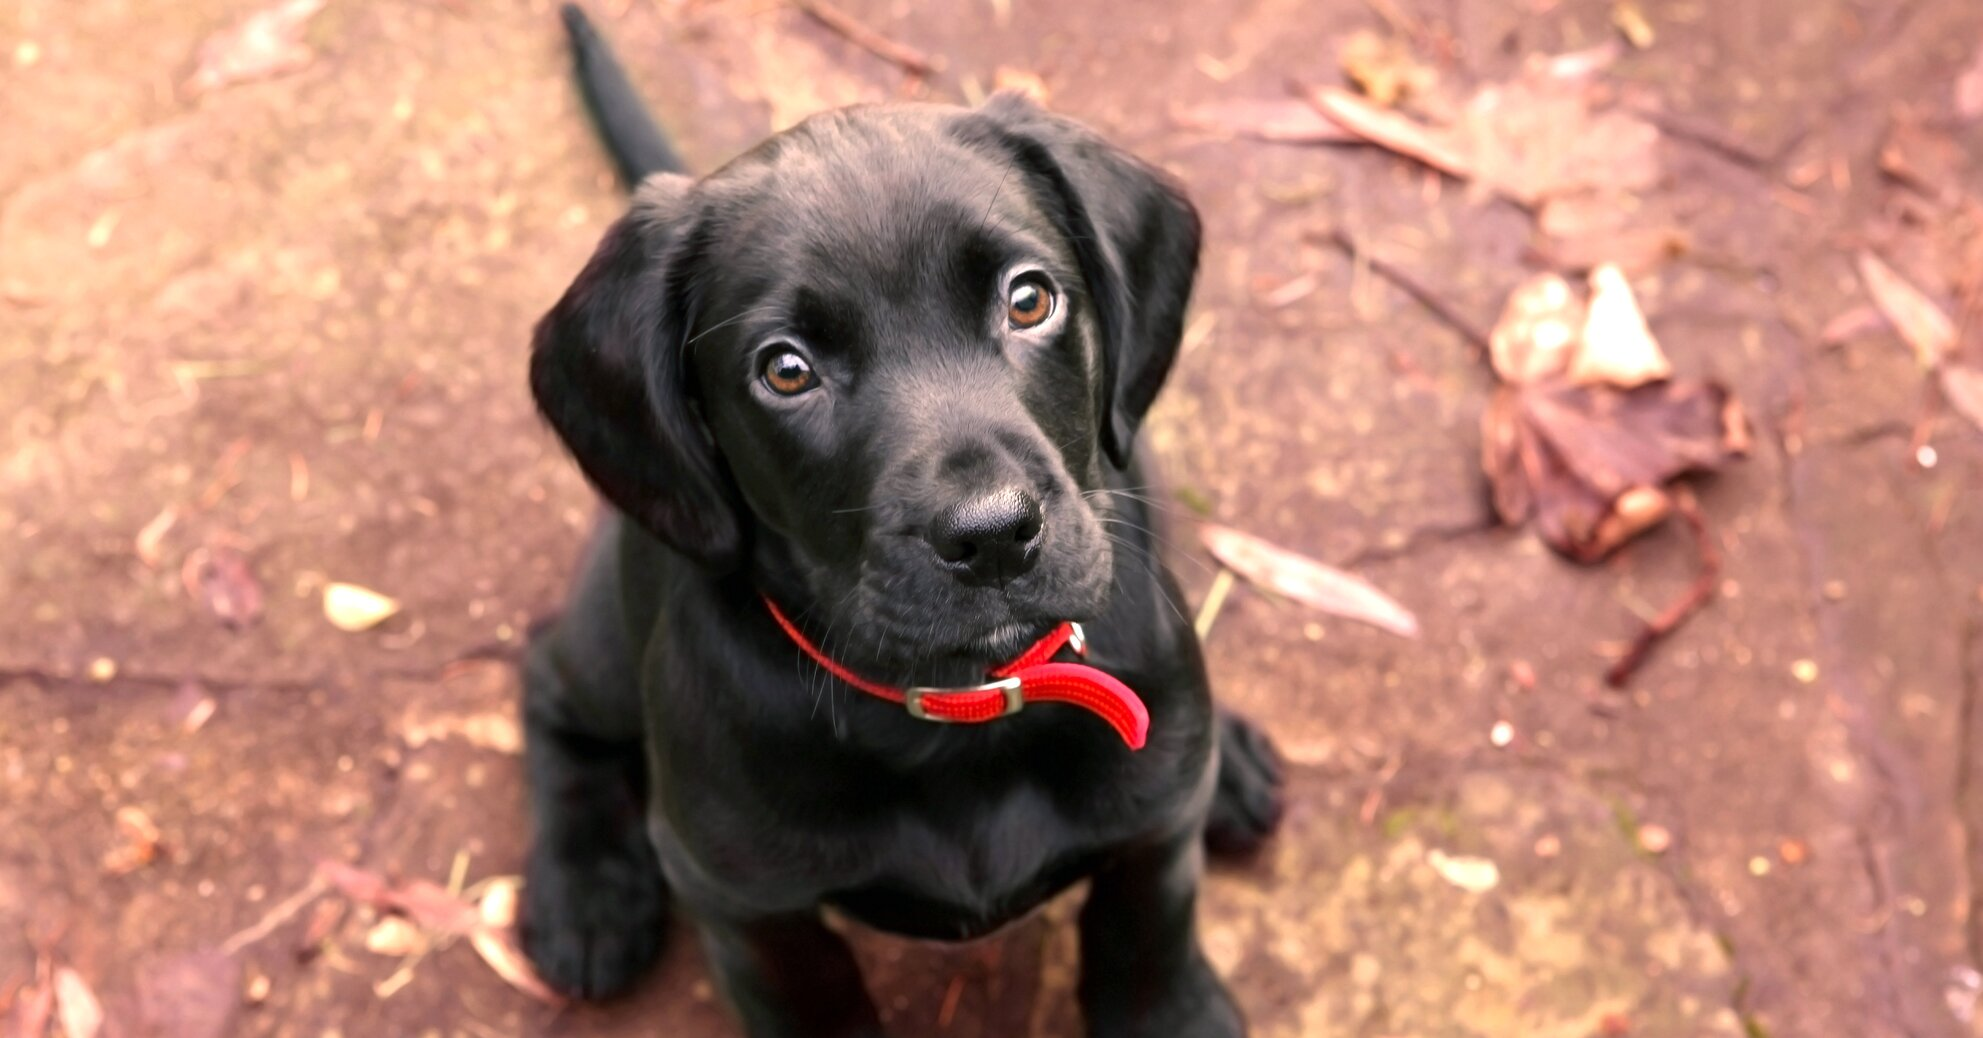 5 Easy Tricks To Teach Your Dog Without A Professional Trainer